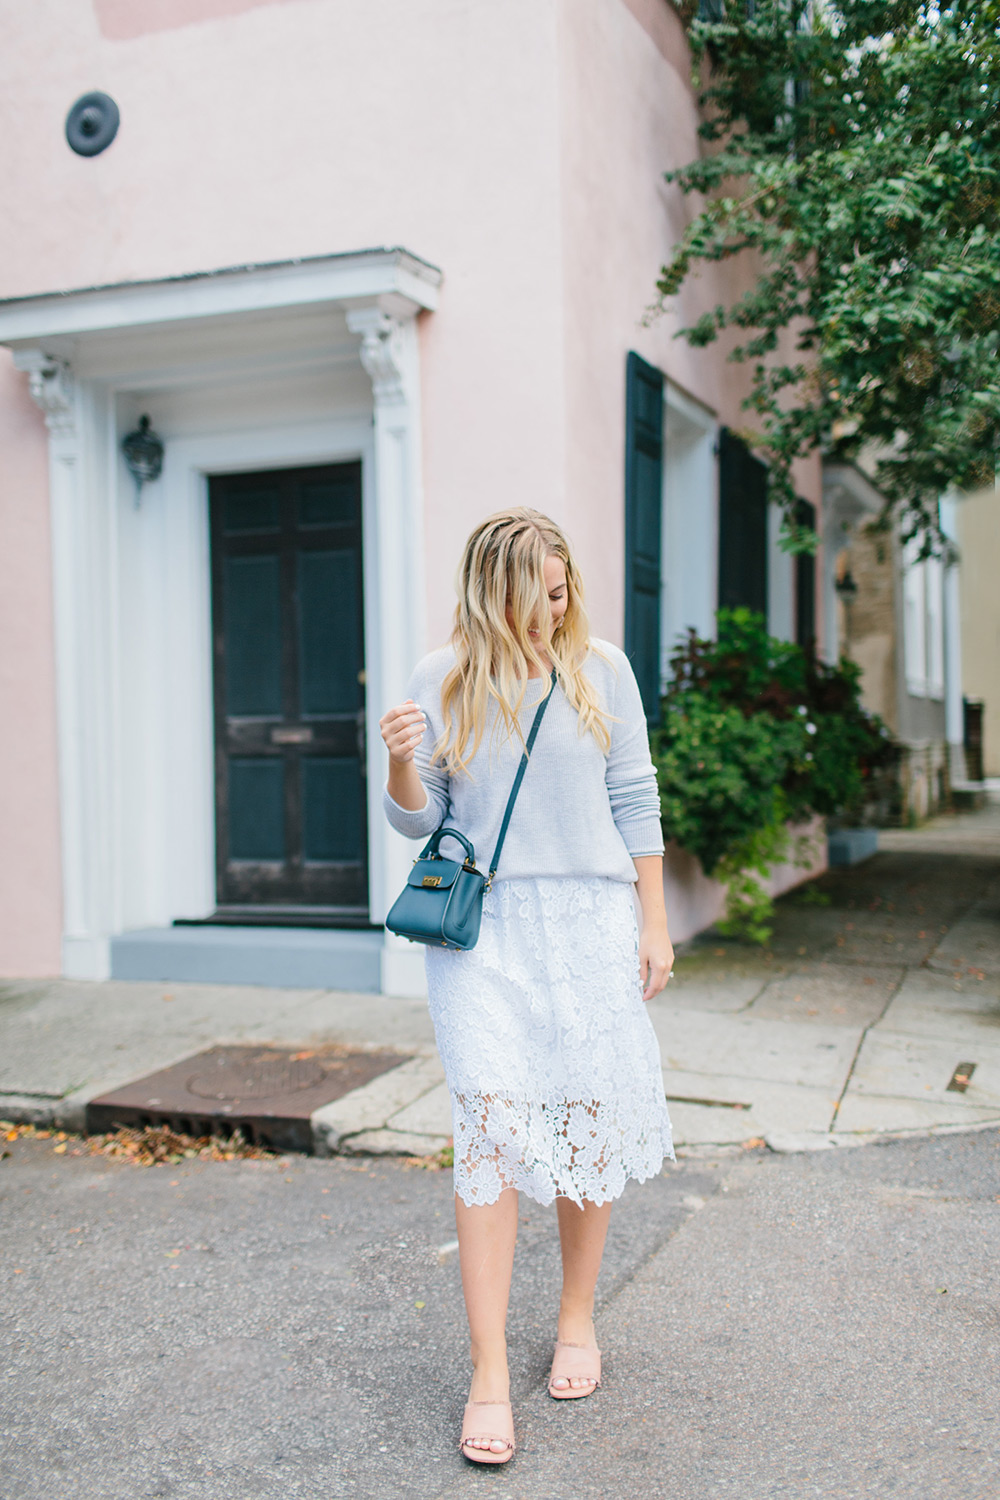 Fall Transitional Outfit